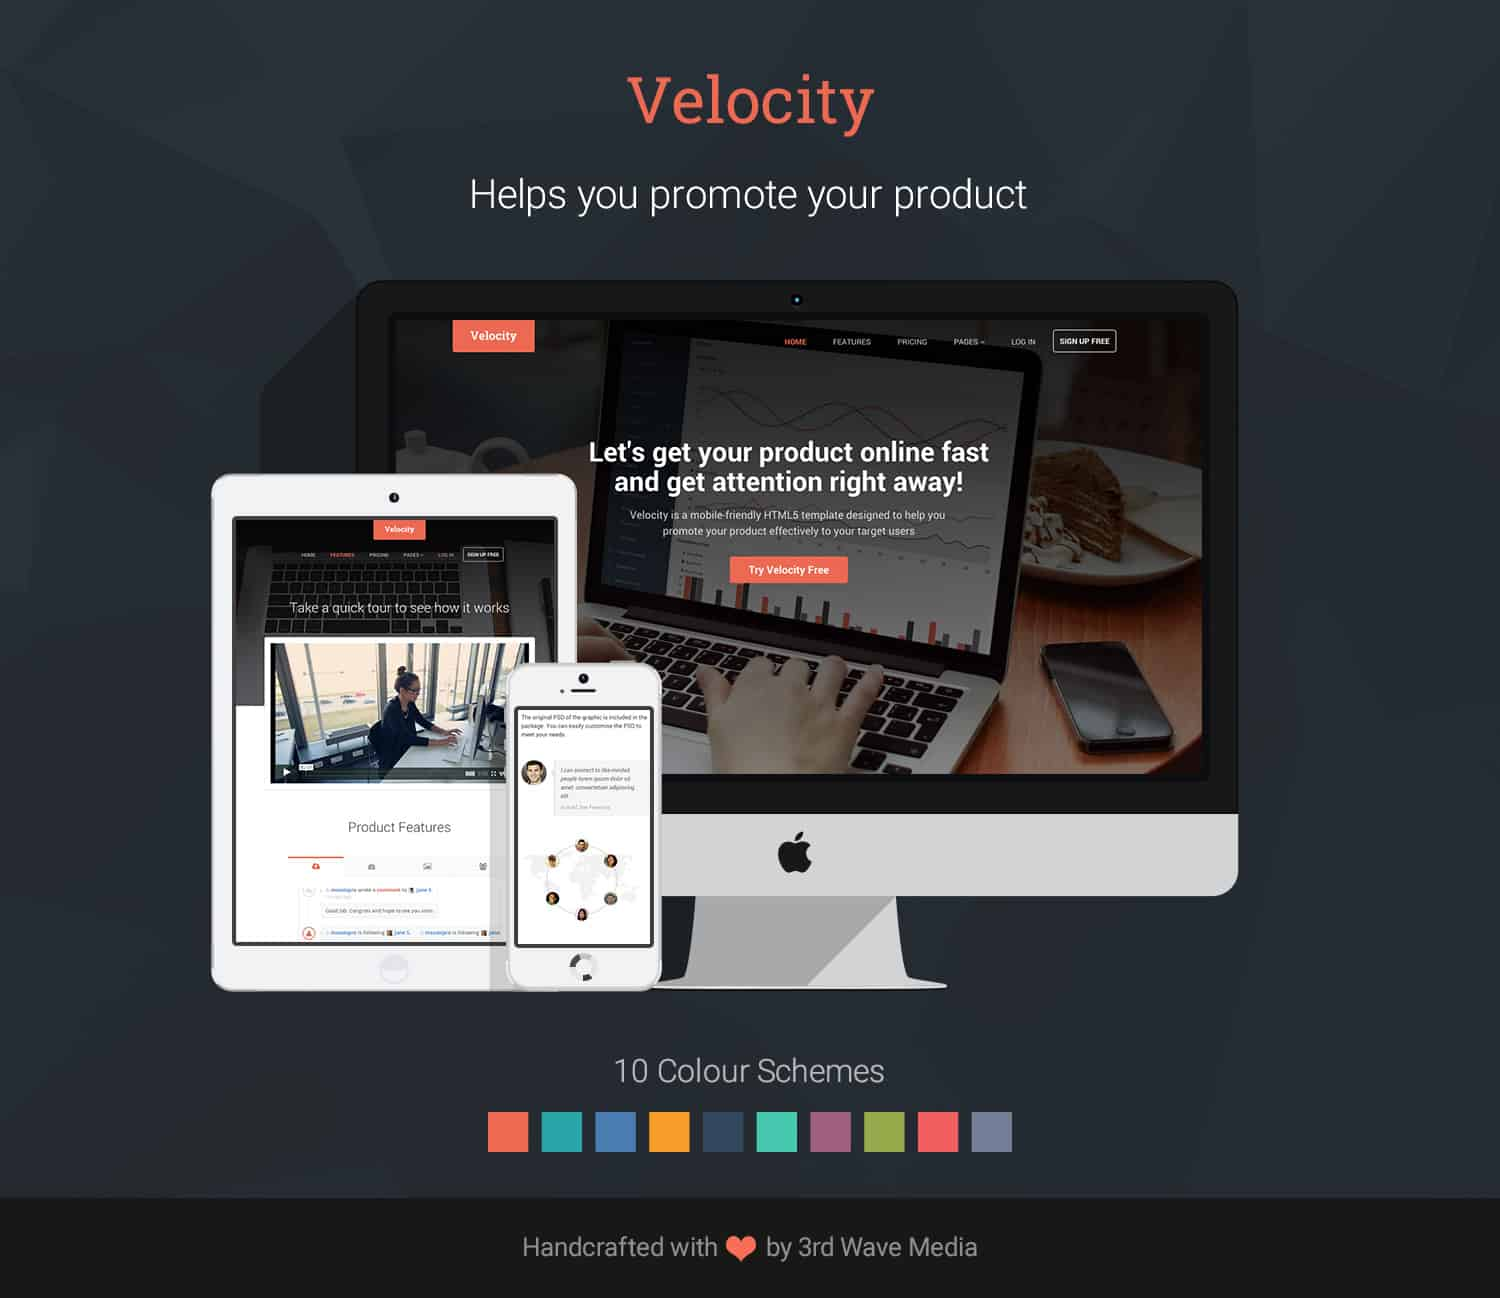 Bootstrap-Template-for-SaaS-Product-Velocity